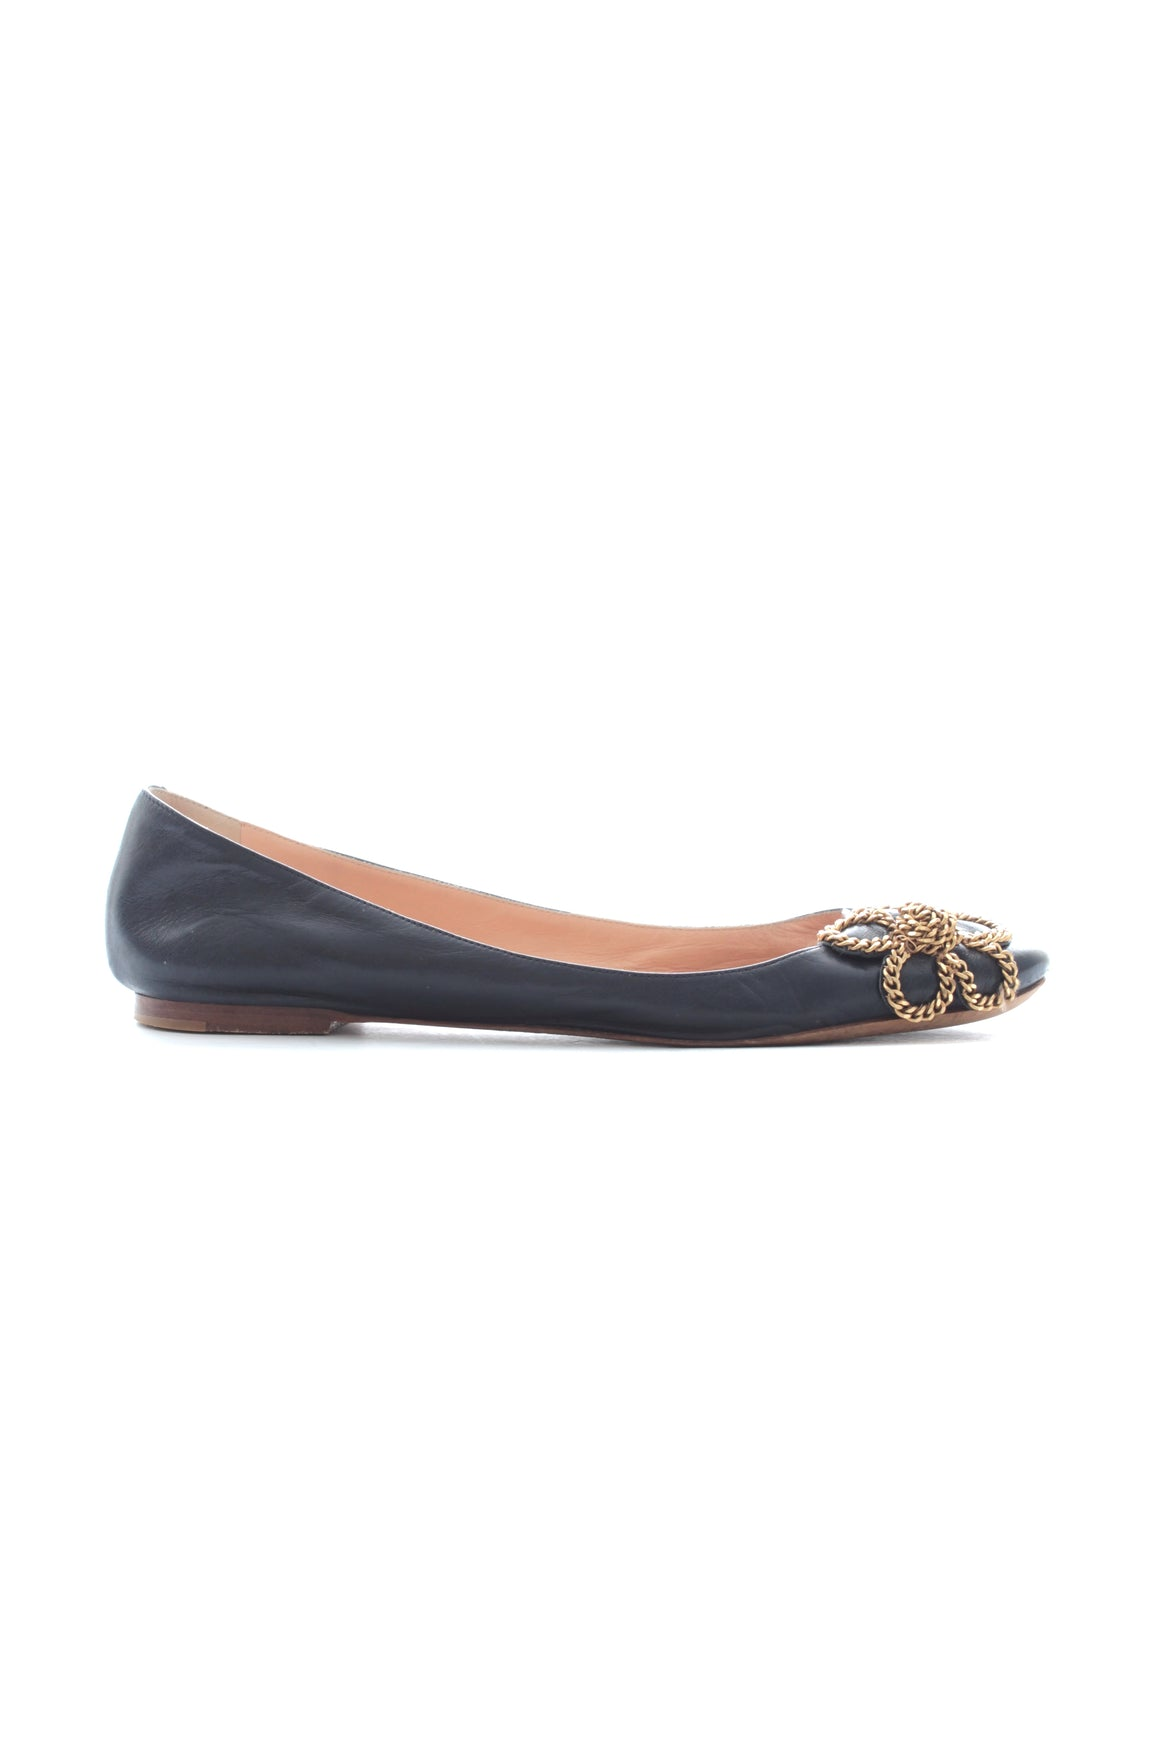 Chloé Chain Flower Leather Ballerina Flats